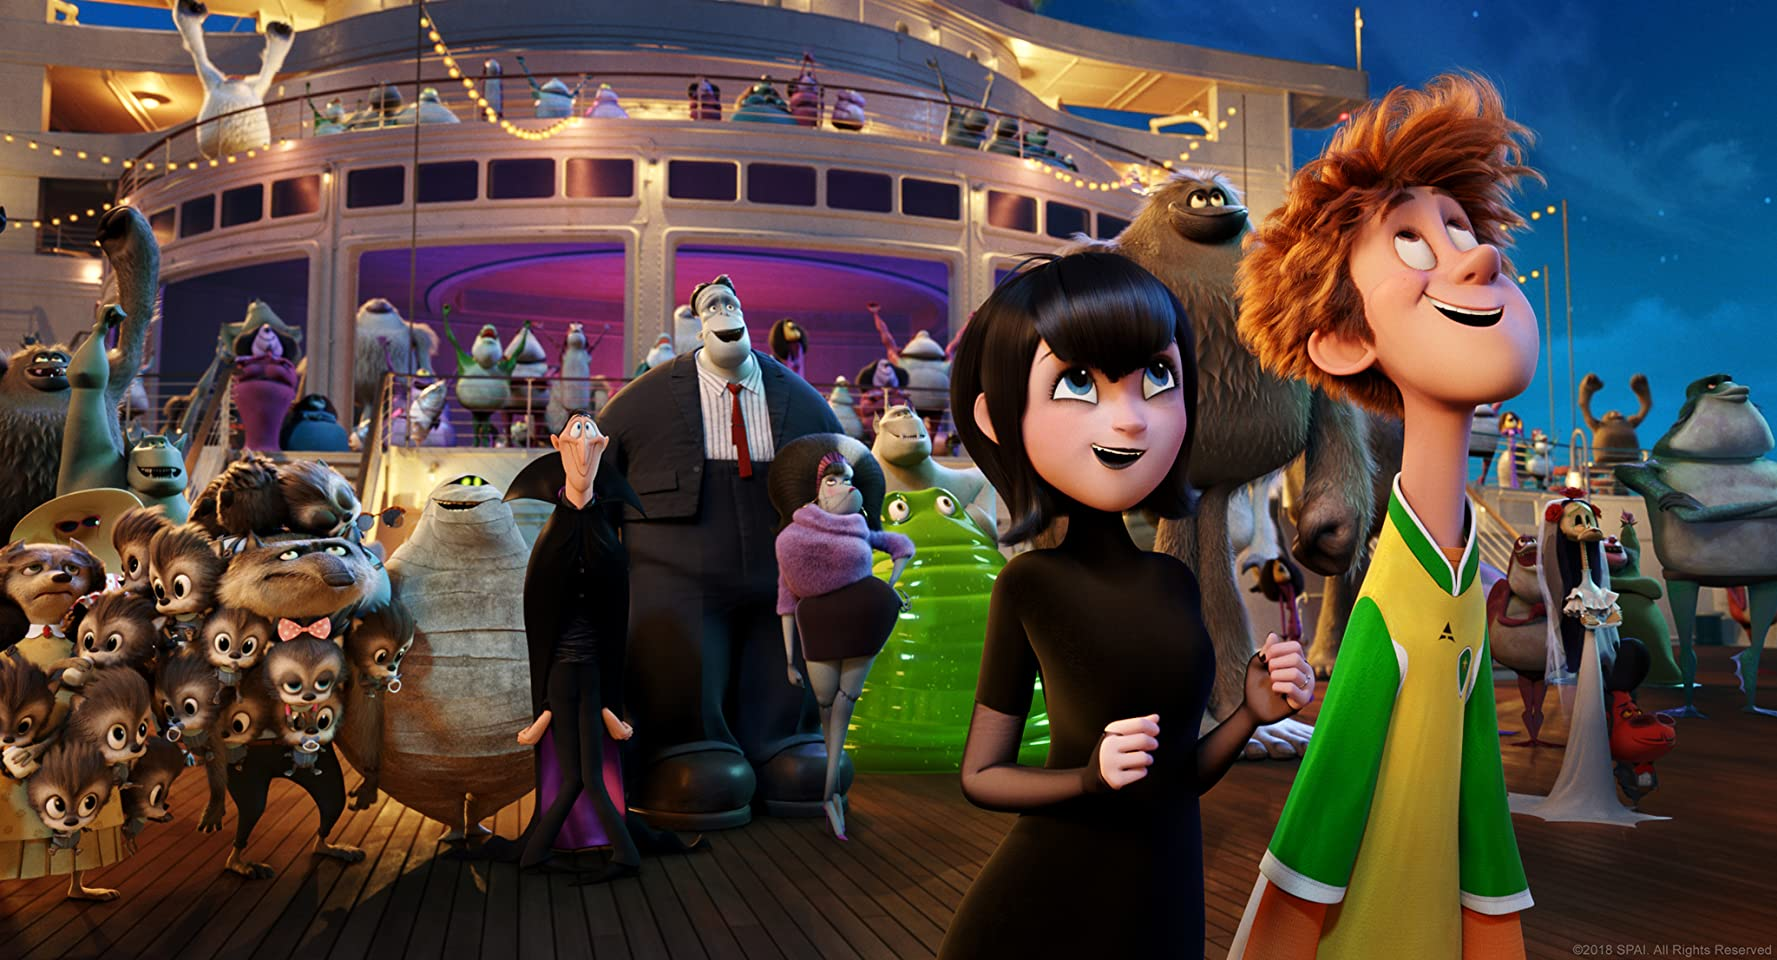 Steve Buscemi, Fran Drescher, Adam Sandler, David Spade, Kevin James, Molly Shannon, Genndy Tartakovsky, Keegan-Michael Key, Selena Gomez, and Andy Samberg in Hotel Transylvania 3: Summer Vacation (2018)